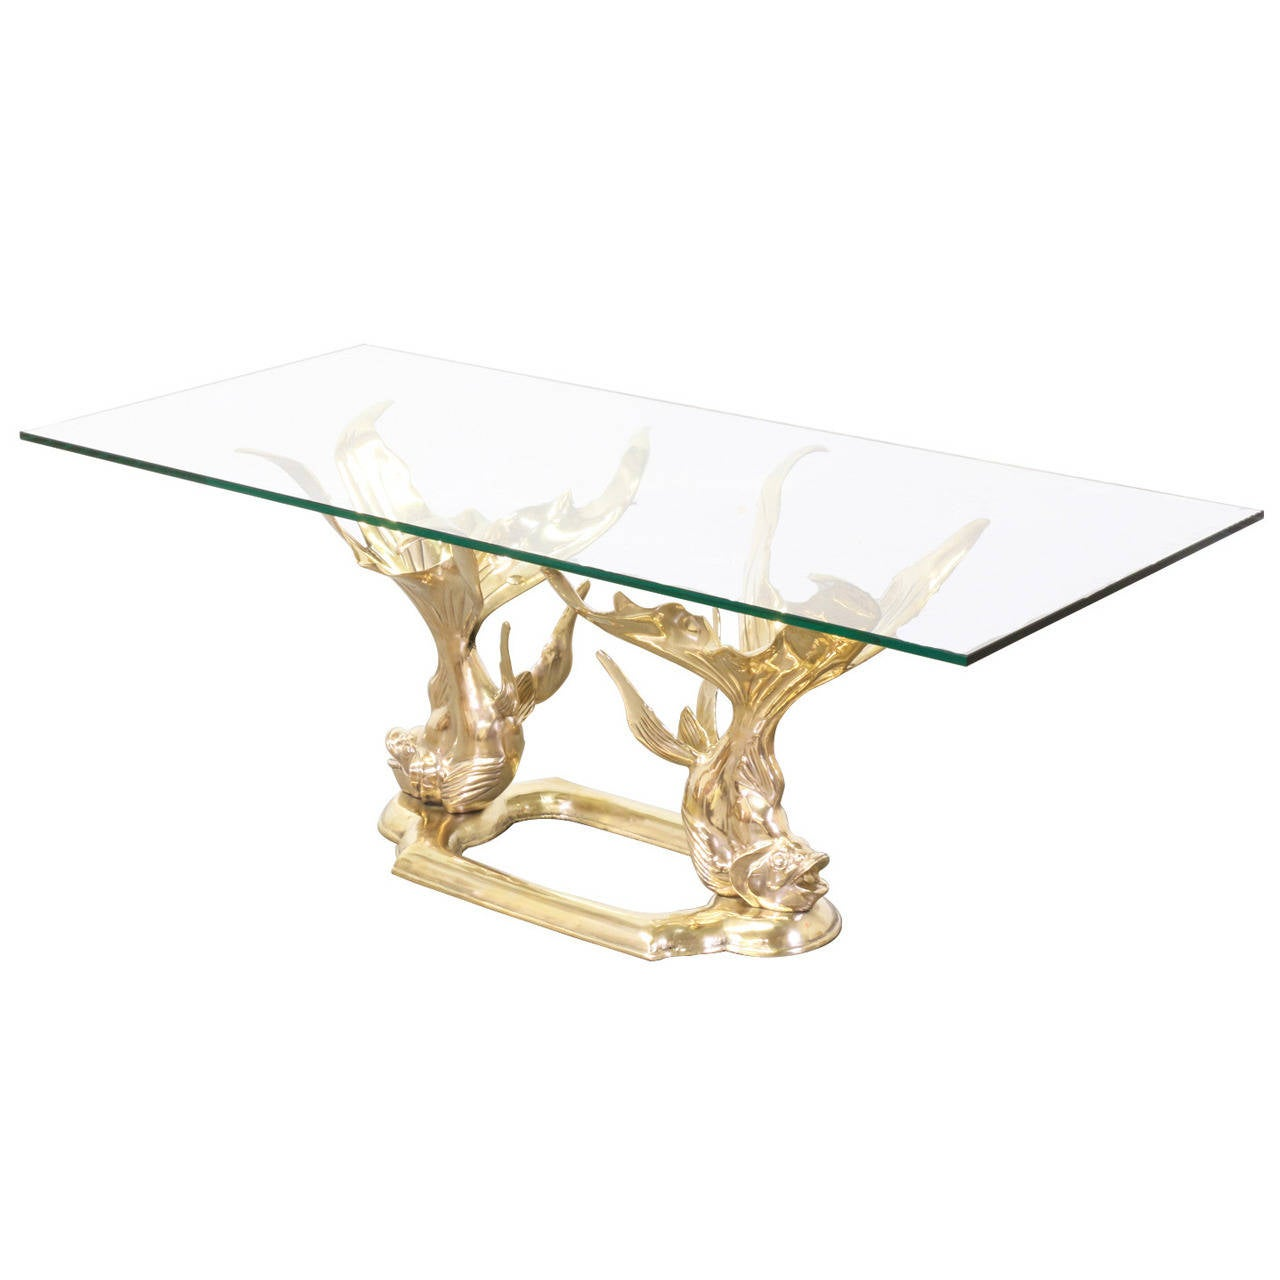 Vintage brass goldfish coffee table with glass top at 1stdibs Antique brass coffee table